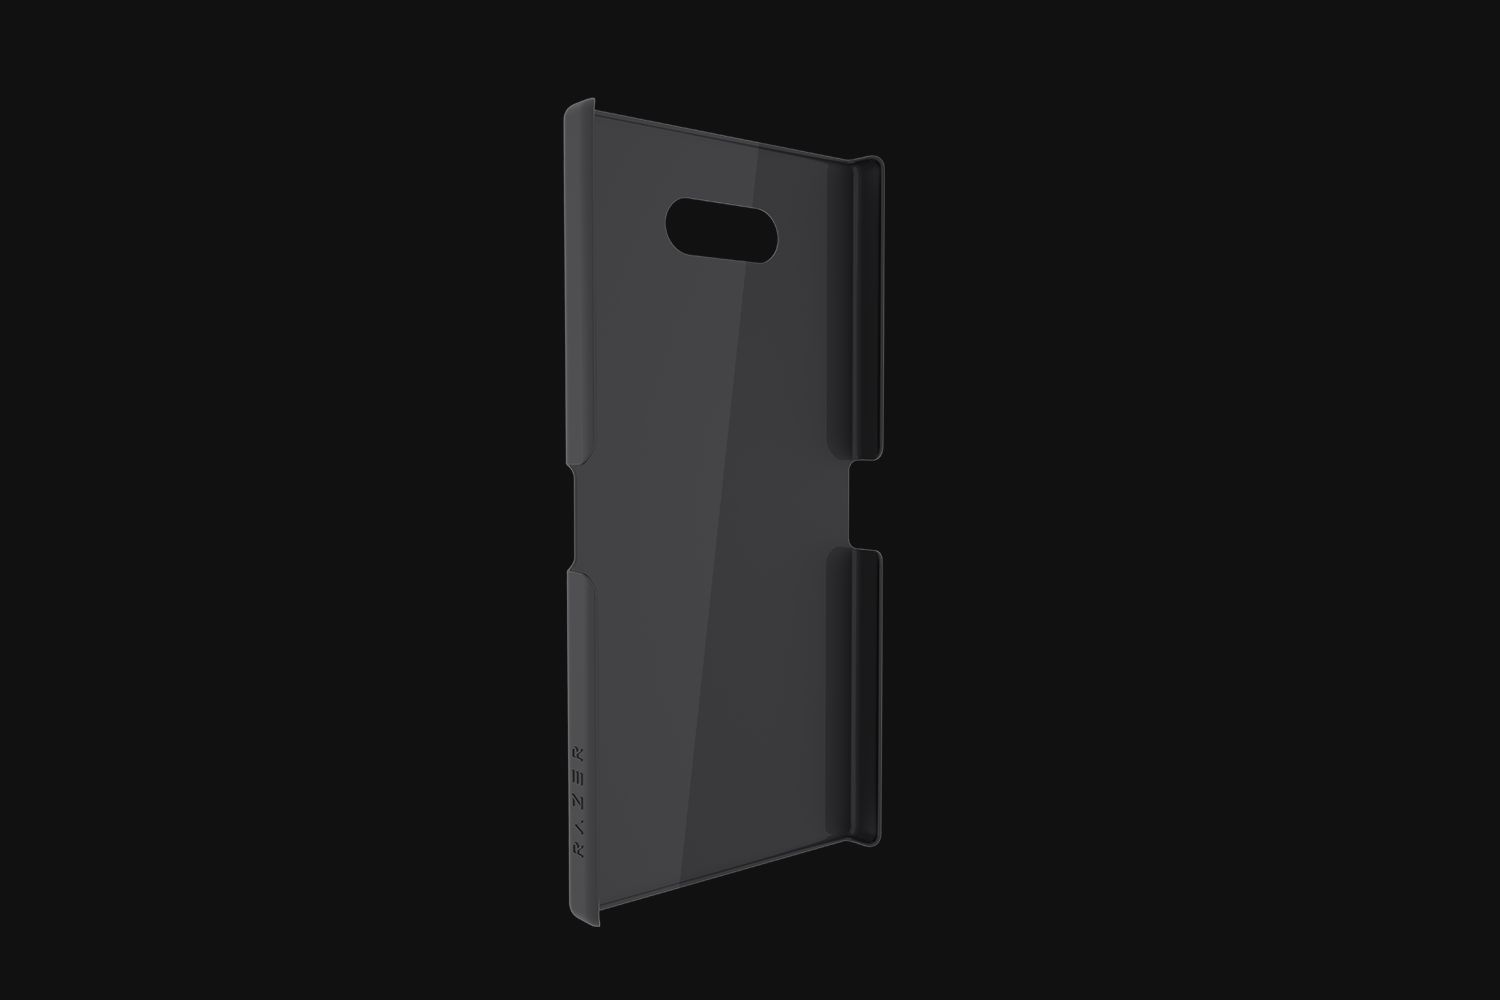 official thin case for the razer phone 2